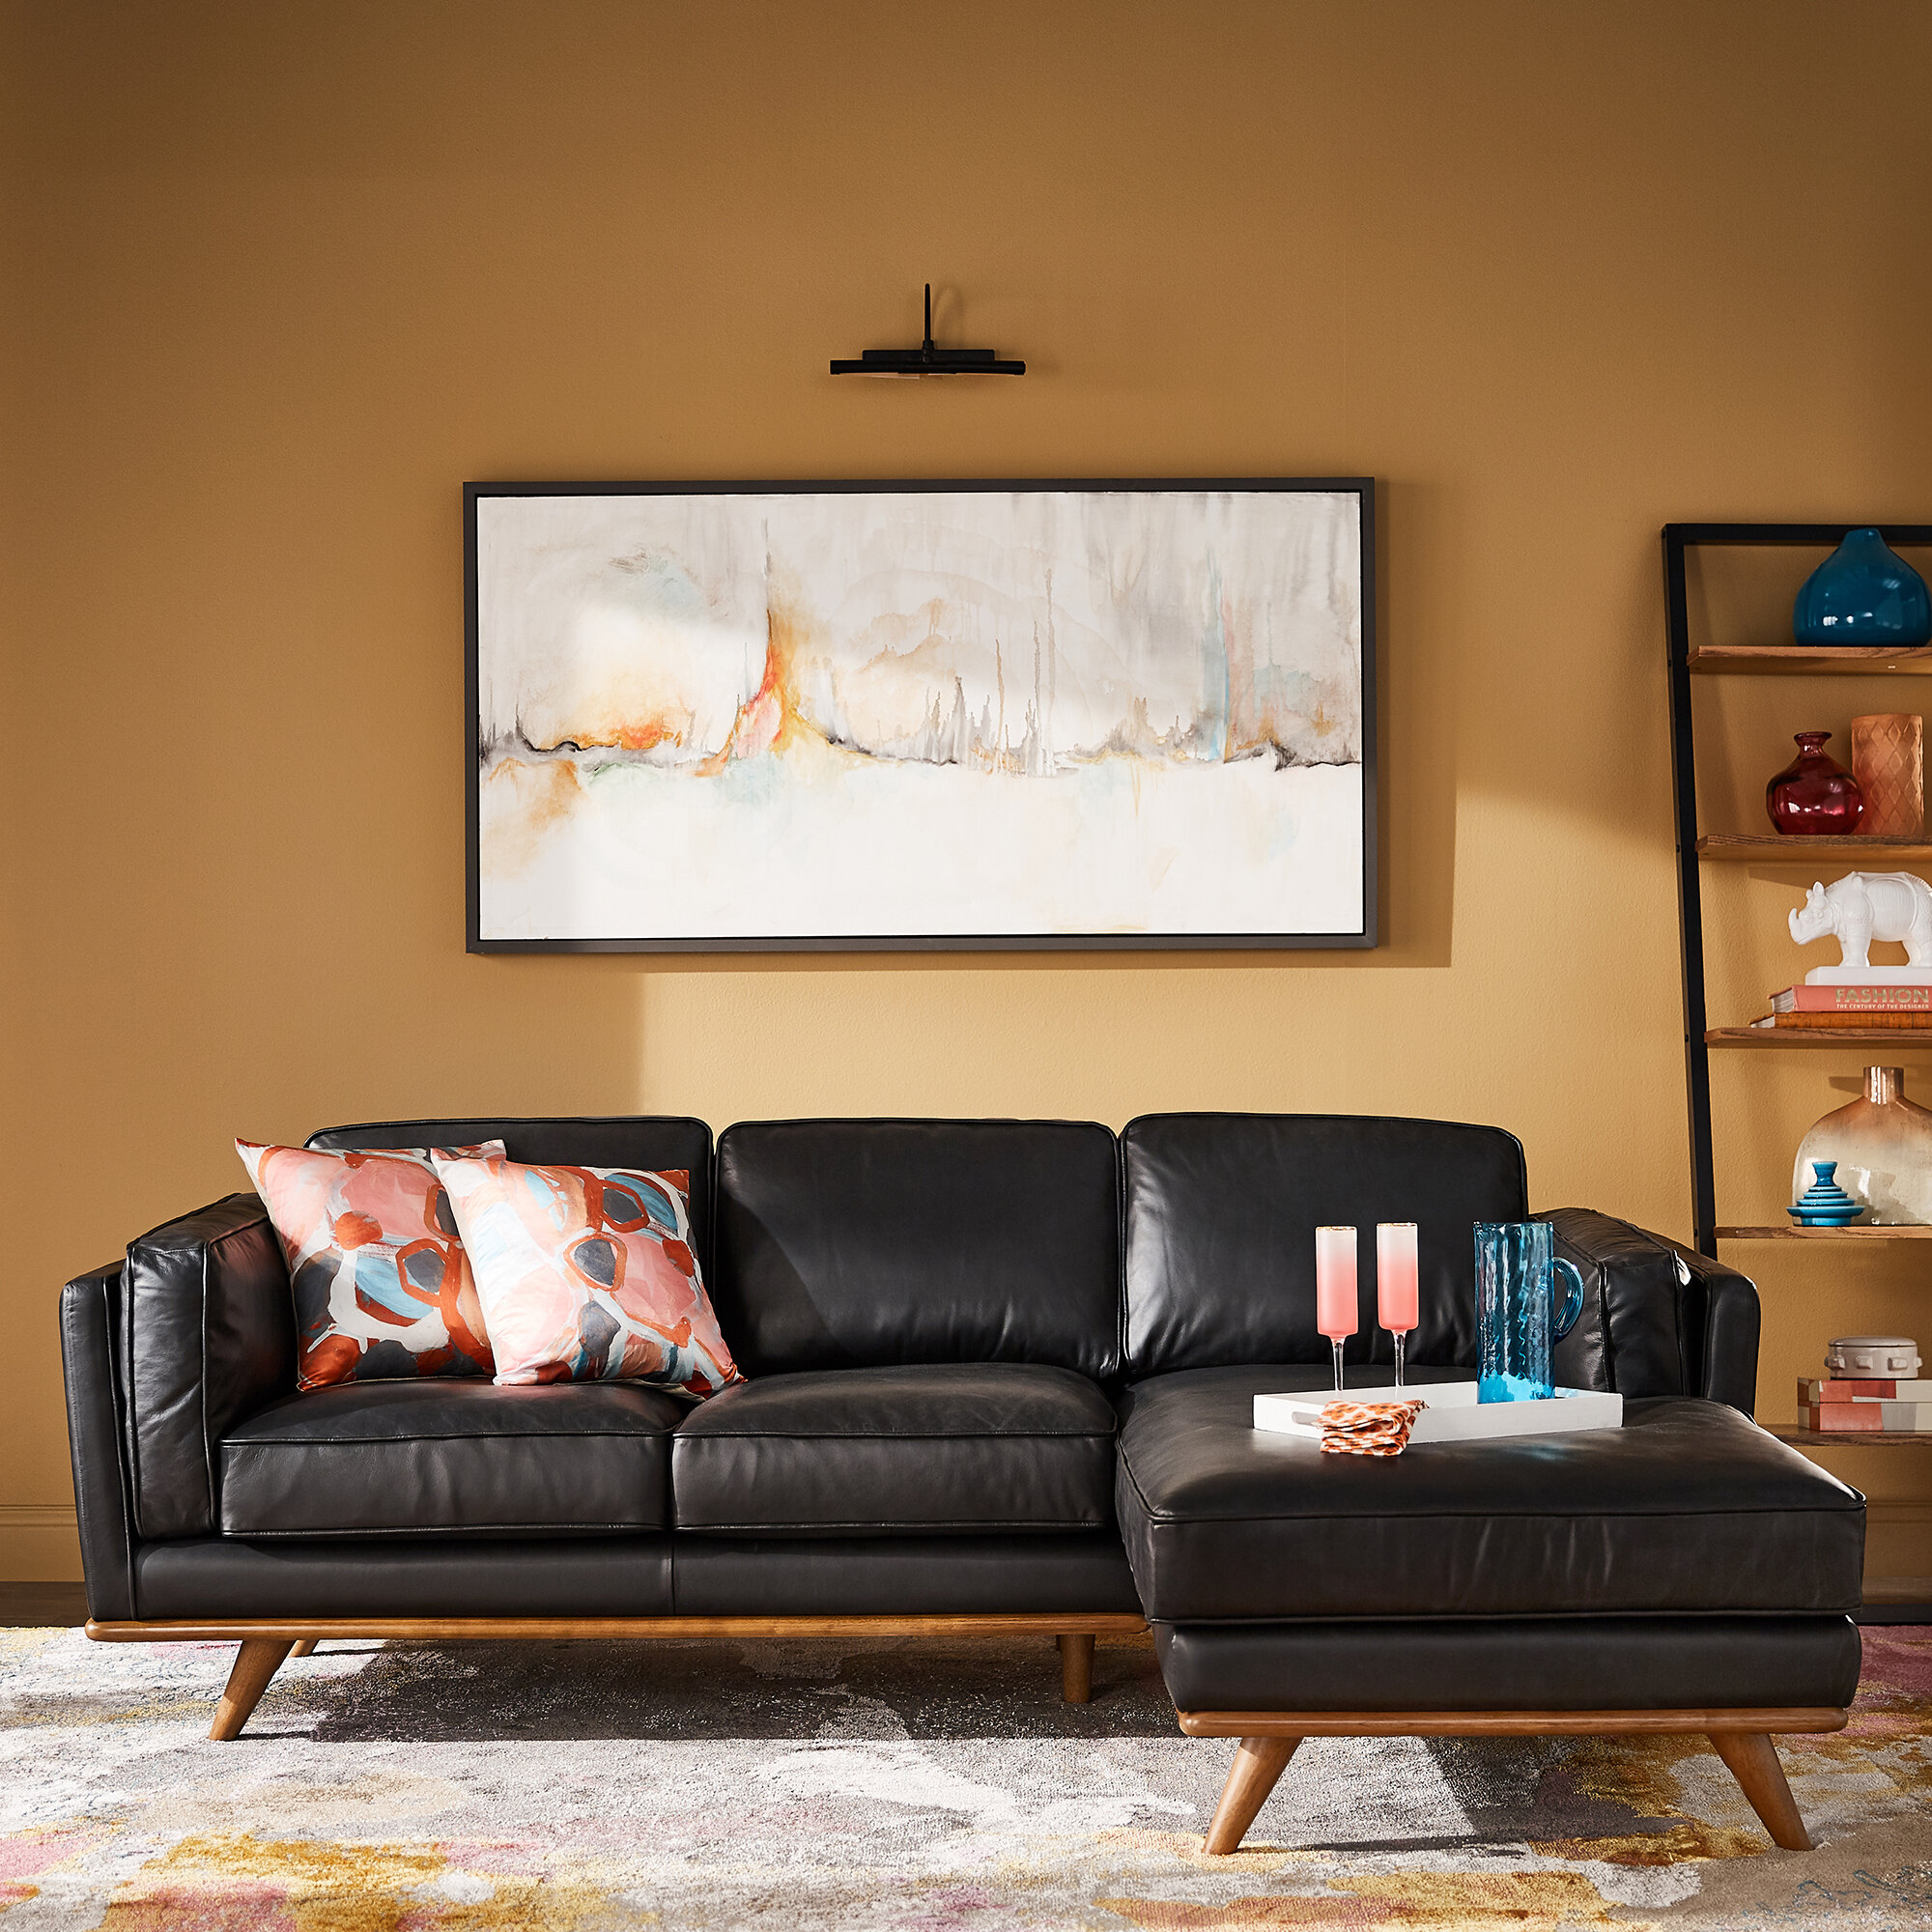 Kingstown Home Ugo 59 Genuine Leather Right Hand Facing Sofa Chaise Wayfair